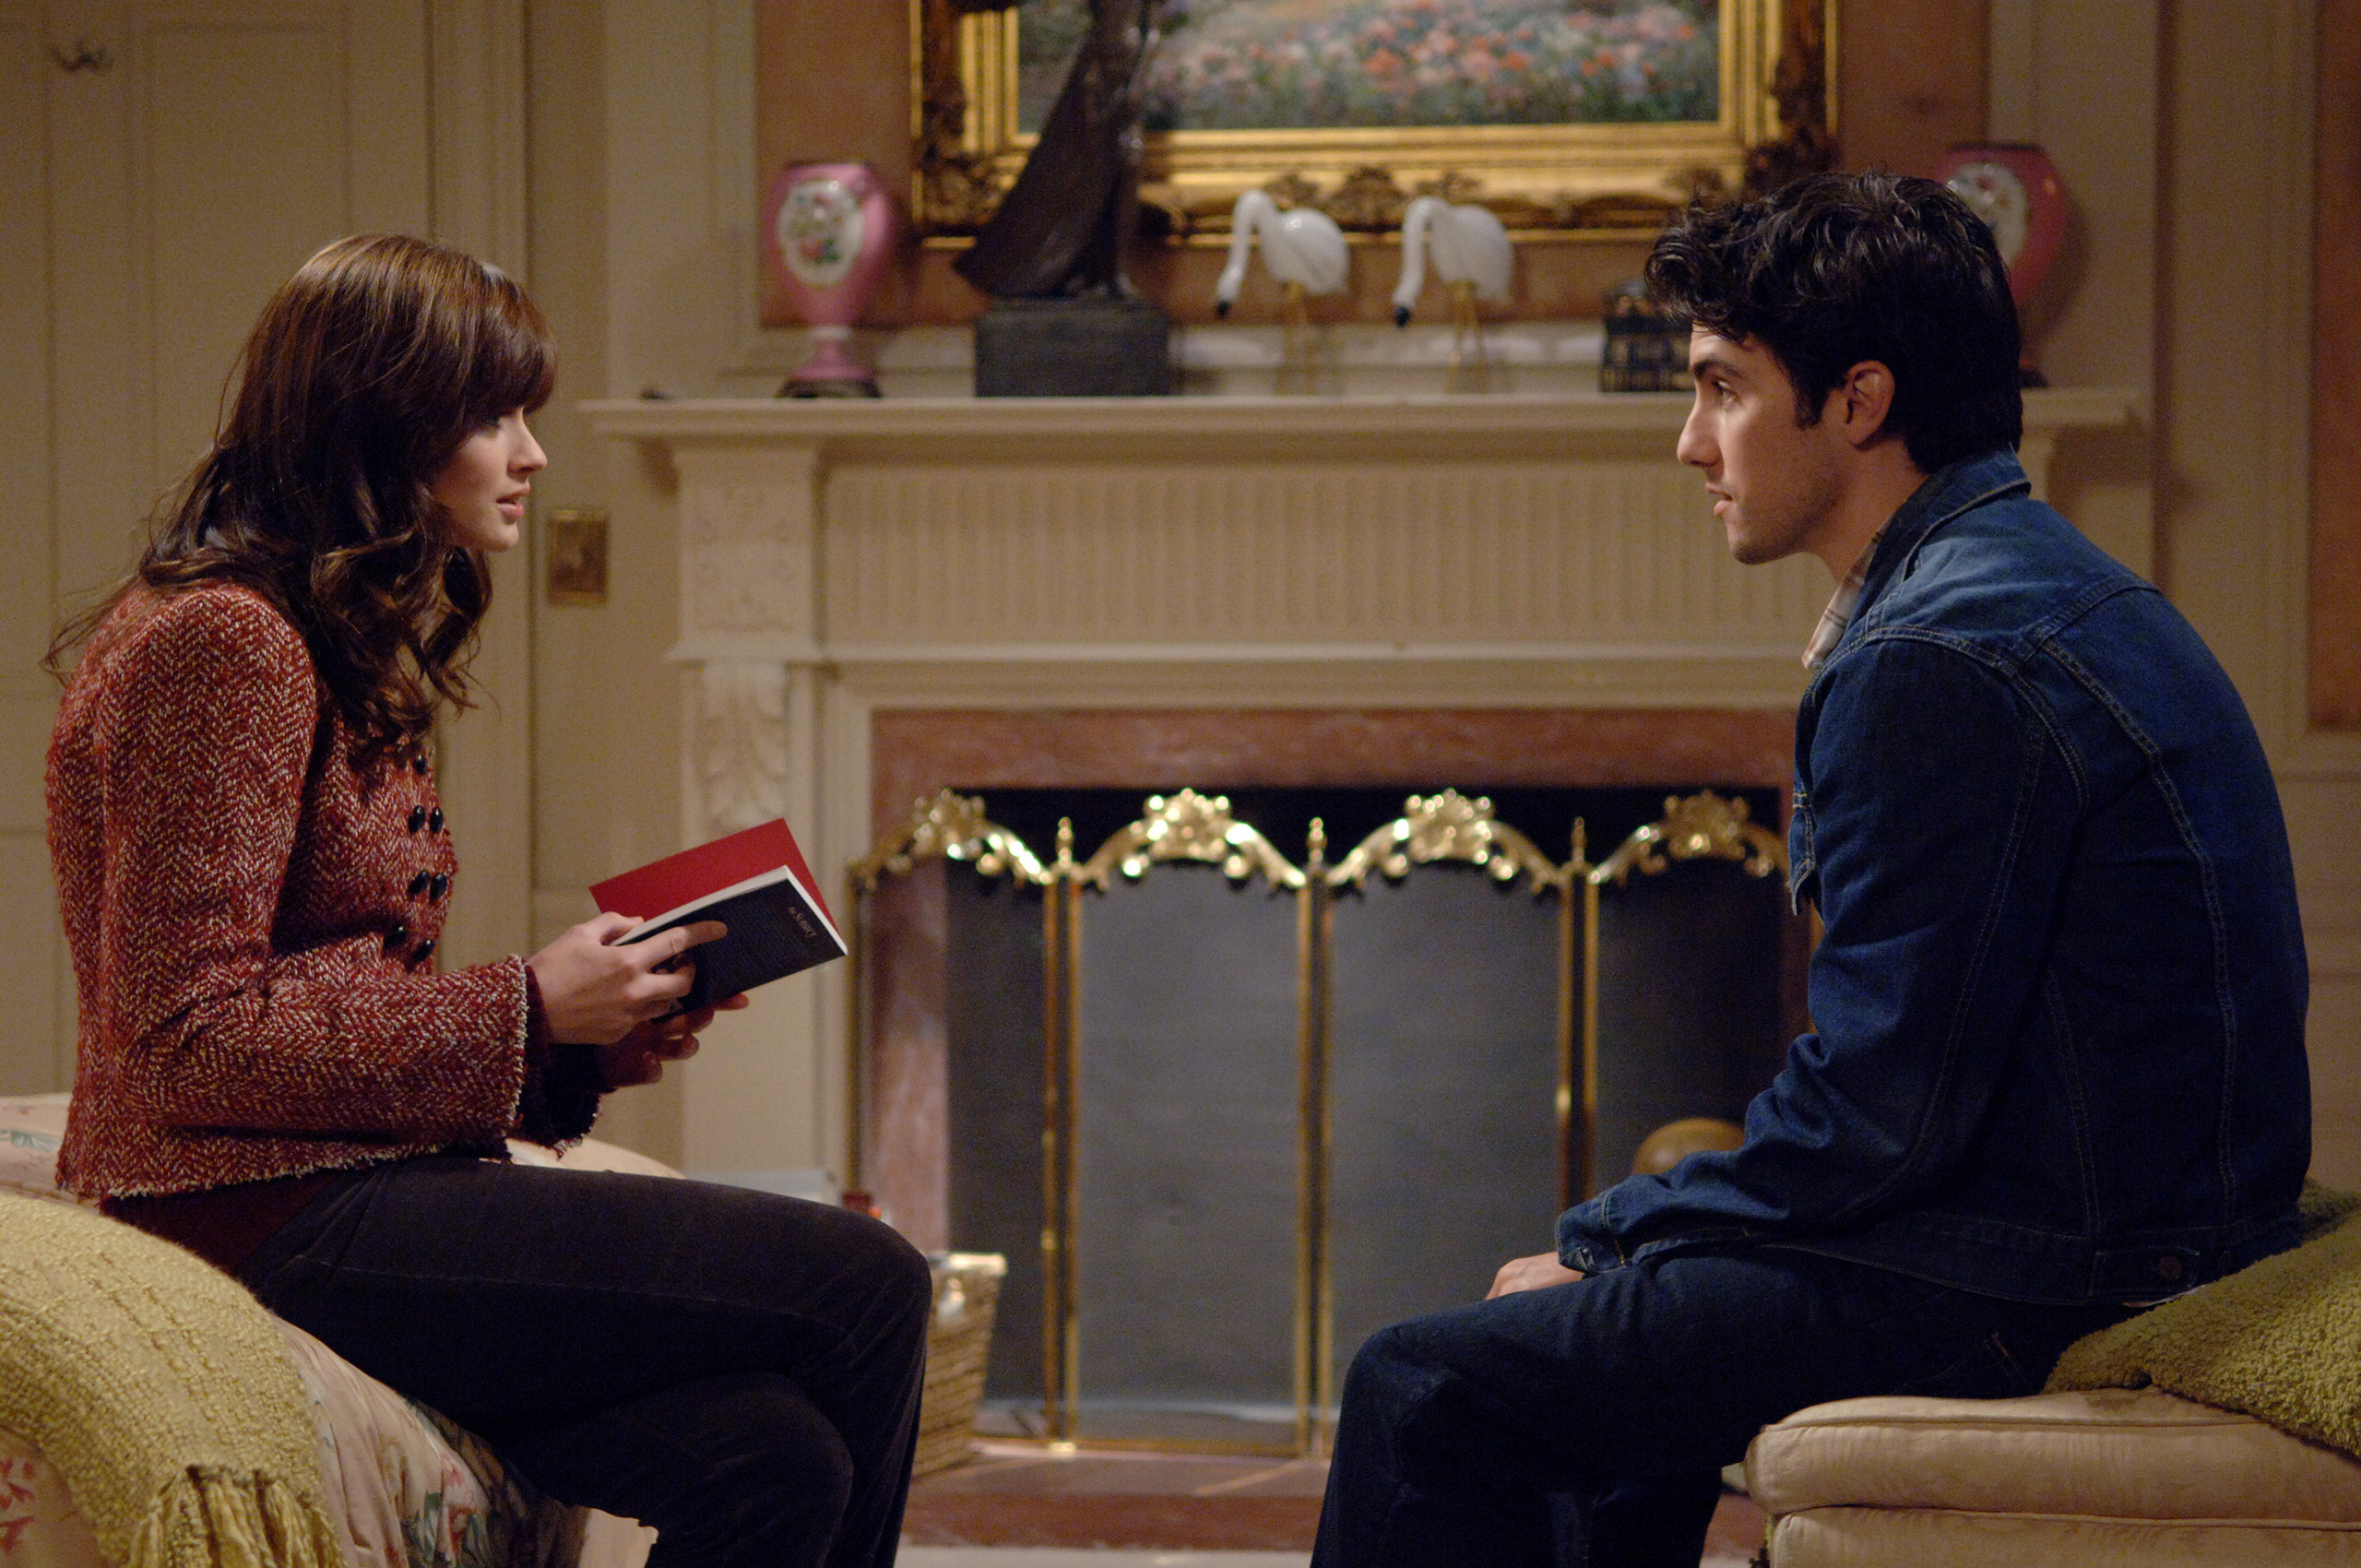 Milo Ventimiglia, who played the role of Jess on Gilmore Girls, sits with Alexis Bledel, who played Rory.